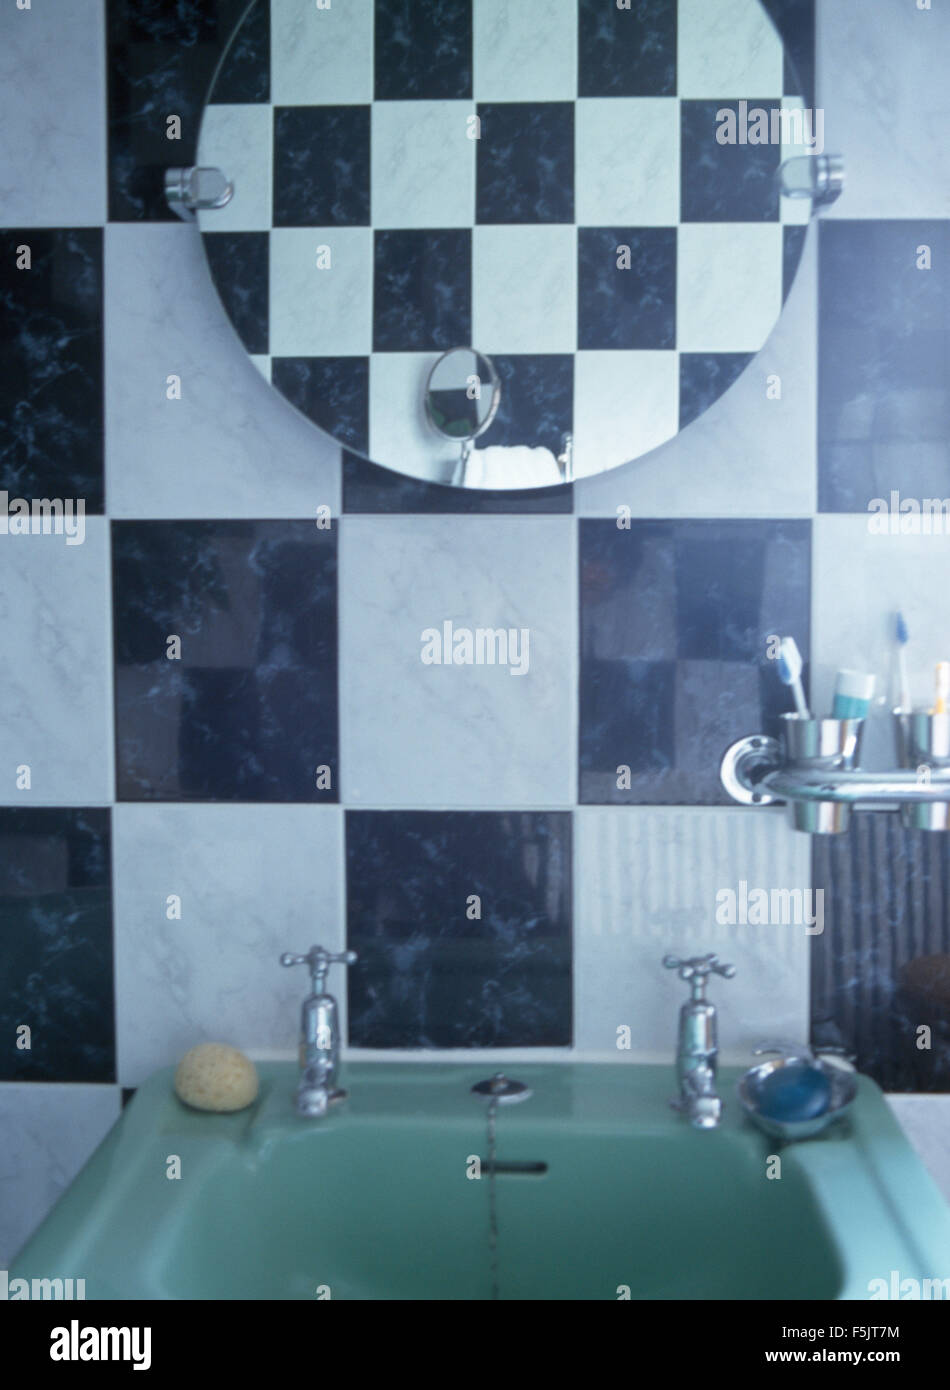 Black And White Tiles Stock Photos & Black And White Tiles Stock ...